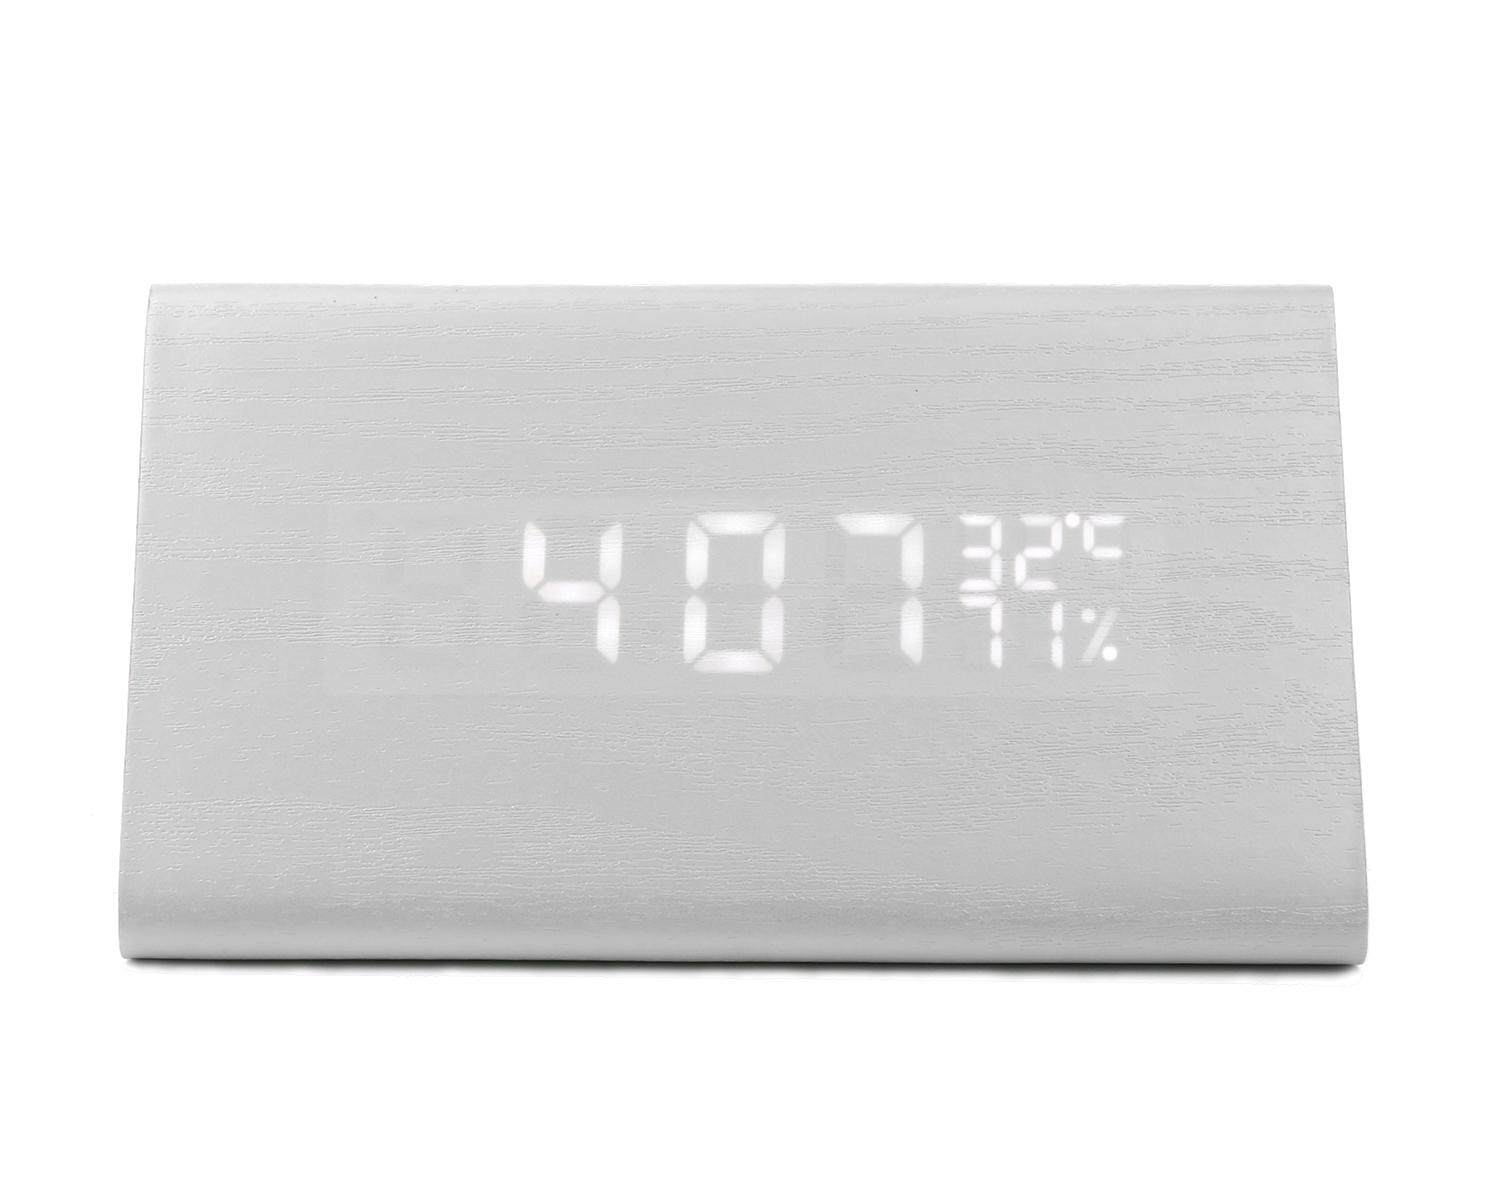 LaNan Wooden Triangle Wood Grain Sound Activated LED Digital Alarm Clock With Temperature And Humidity Display,White Wood - intl